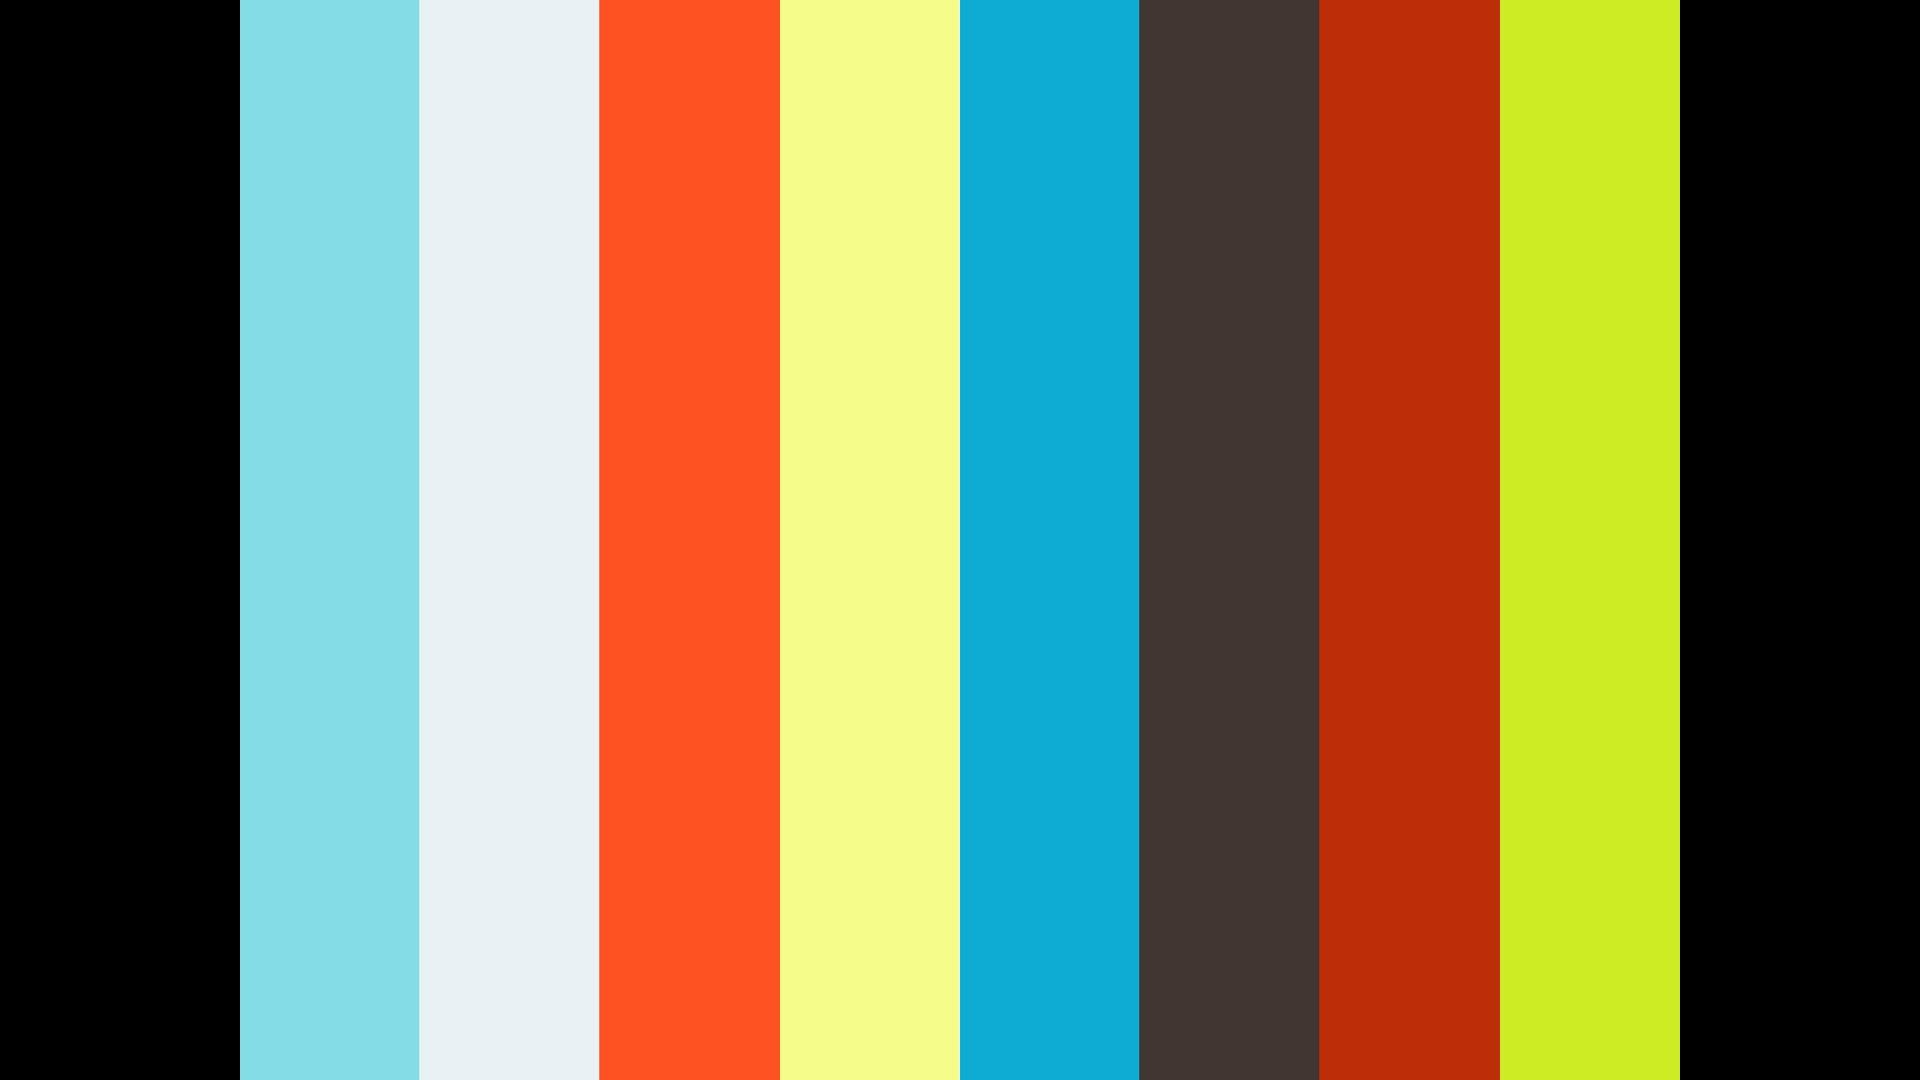 Kellogg's Multibrand - We Do Breakfast